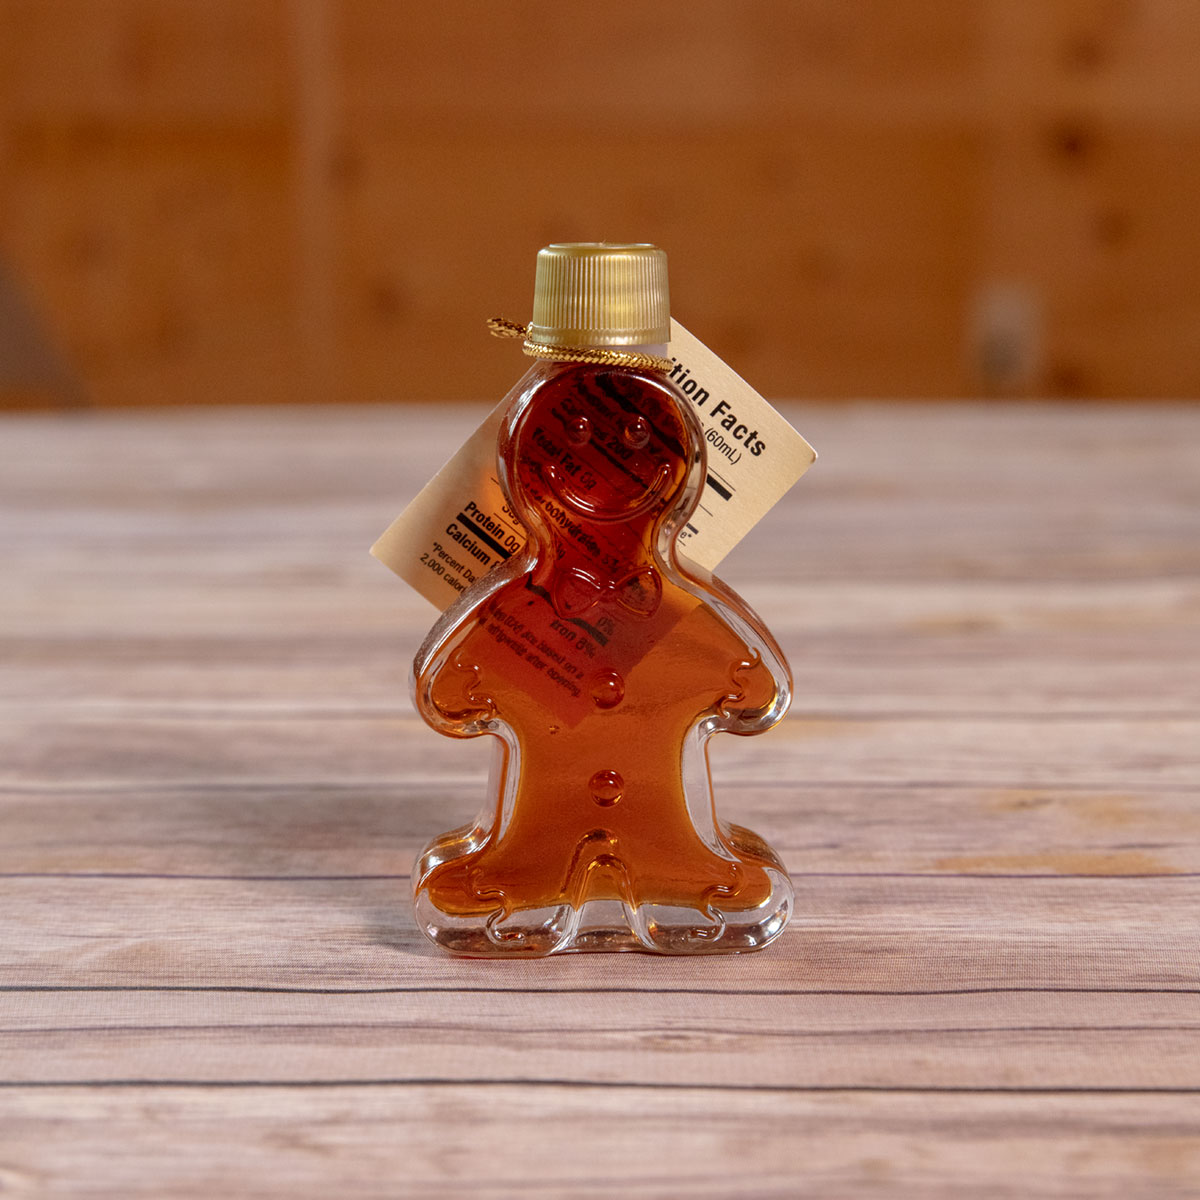 Bechard's PURE Maple Syrup Decorative Glass Jar - Gingerbread Man